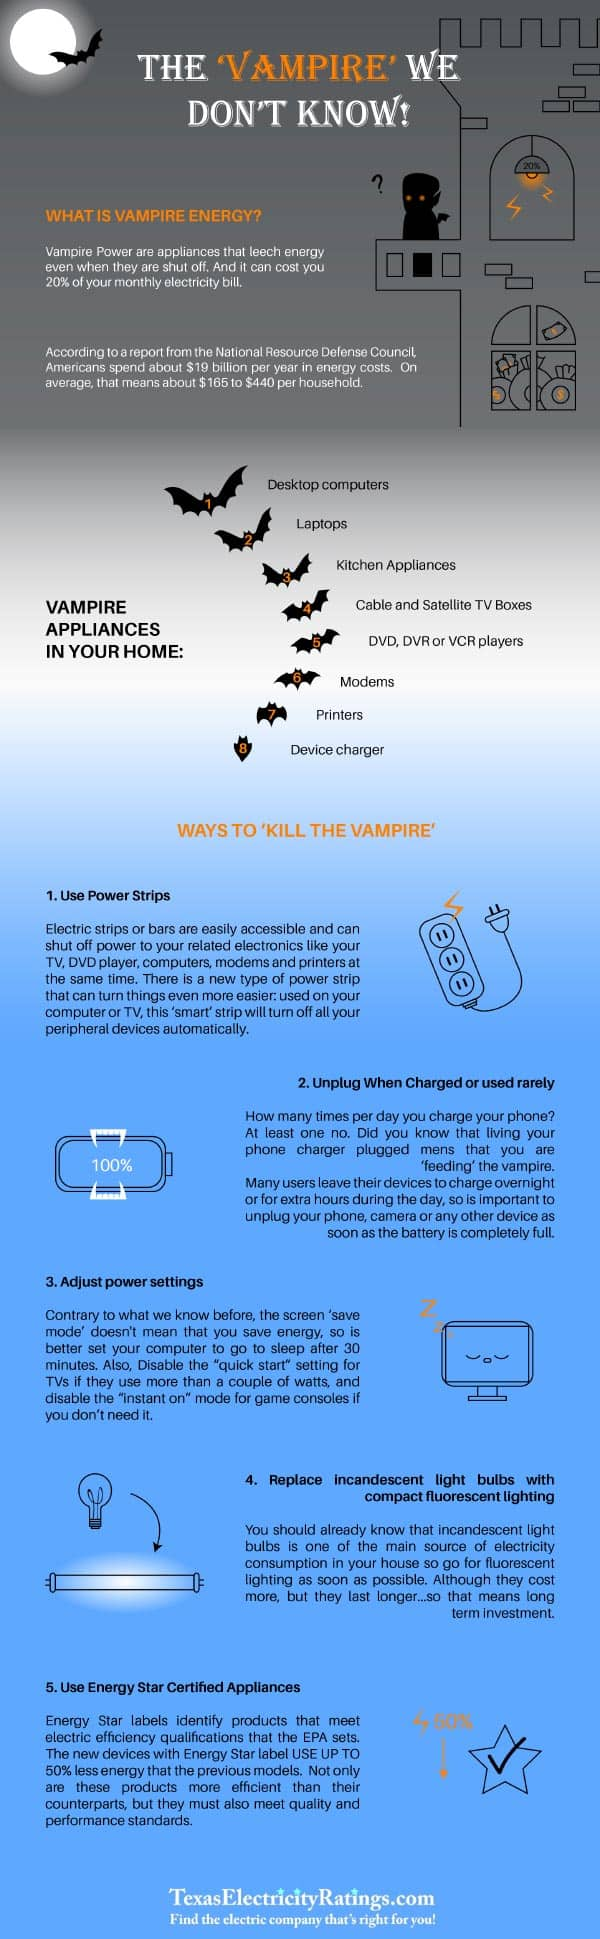 vampire-power-infographic